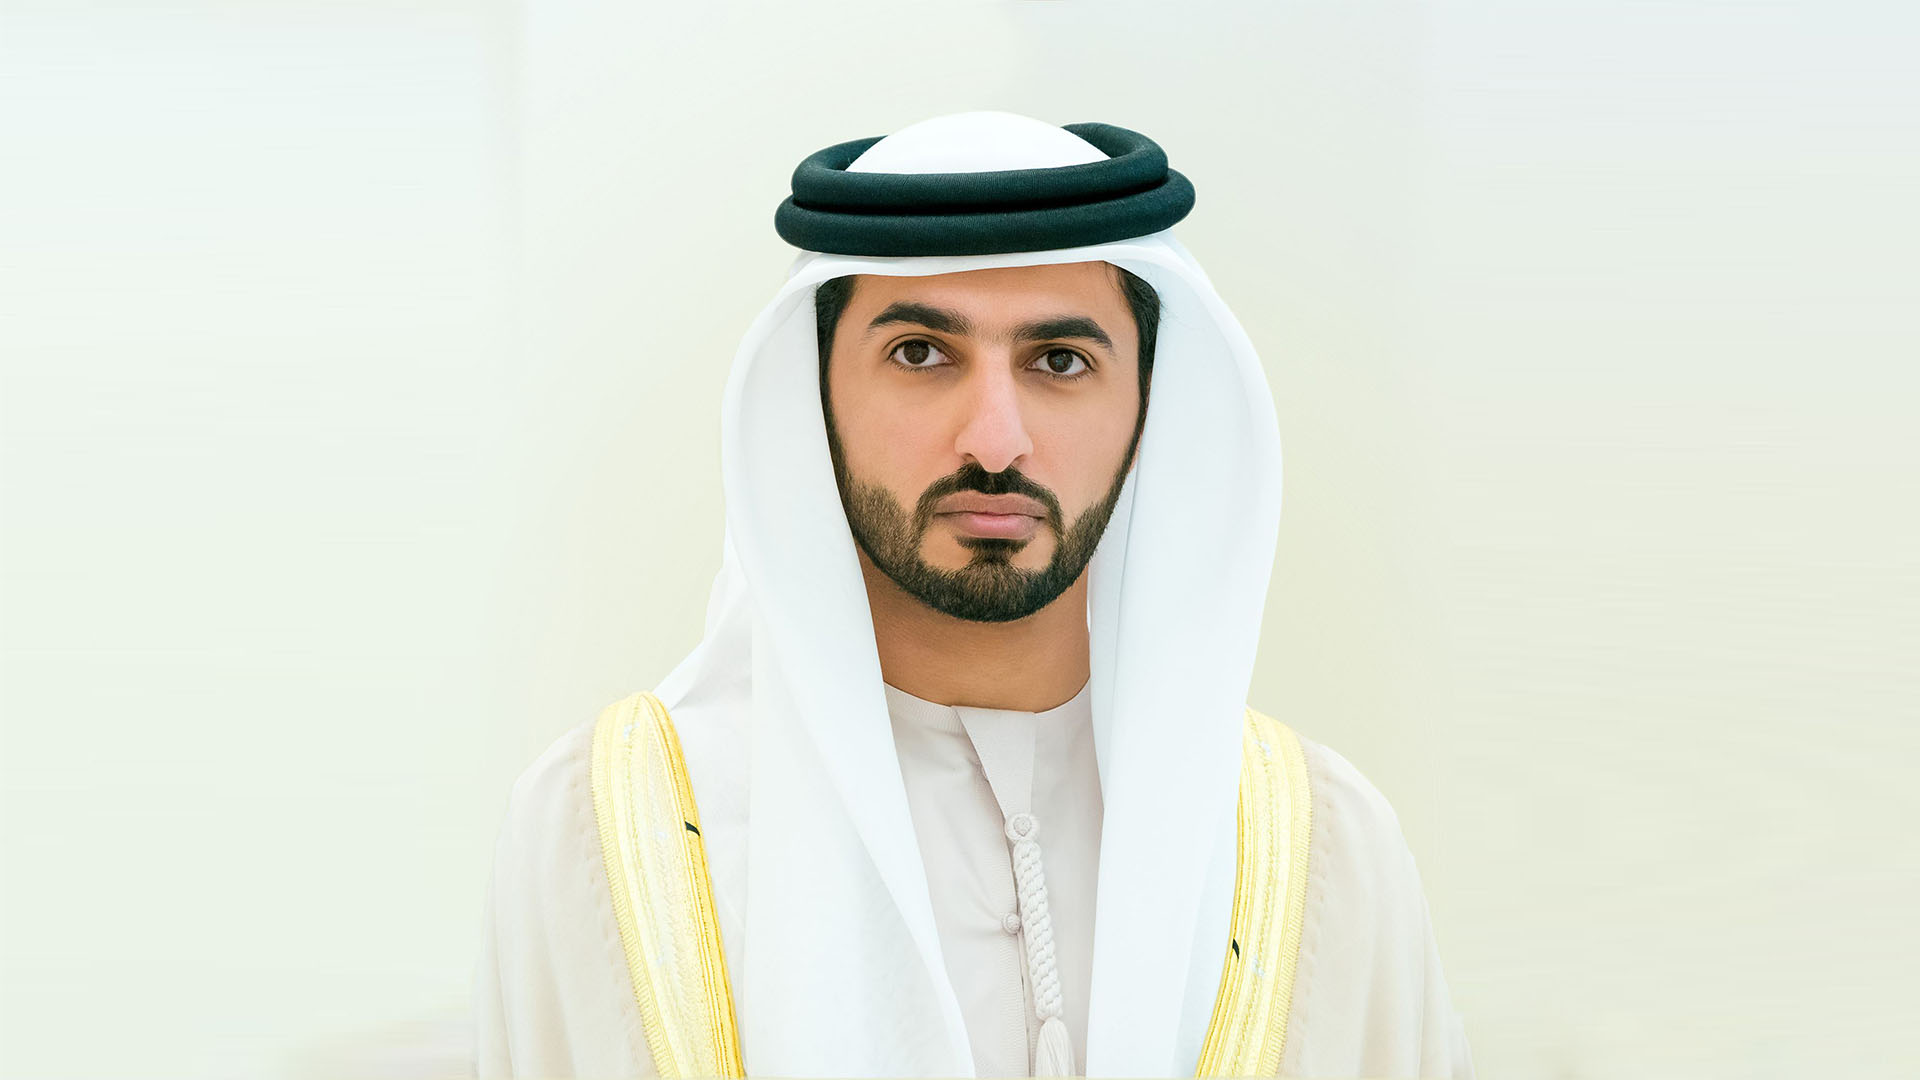 Rashid bin Humaid: AFC has faith in UAE's capability to host major events